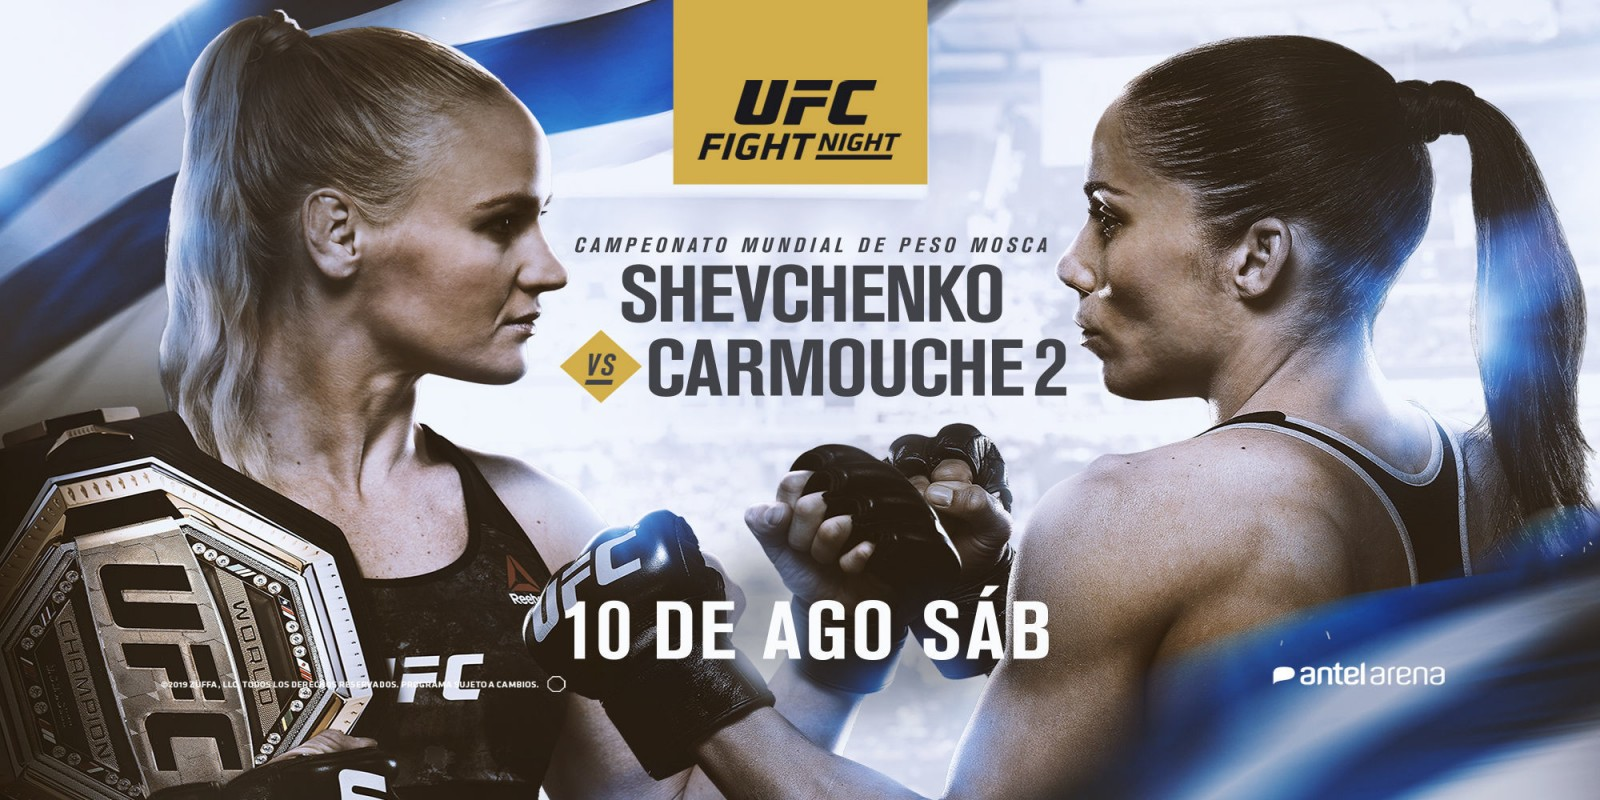 Official artwork for UFC Fight Night event in Uruguay